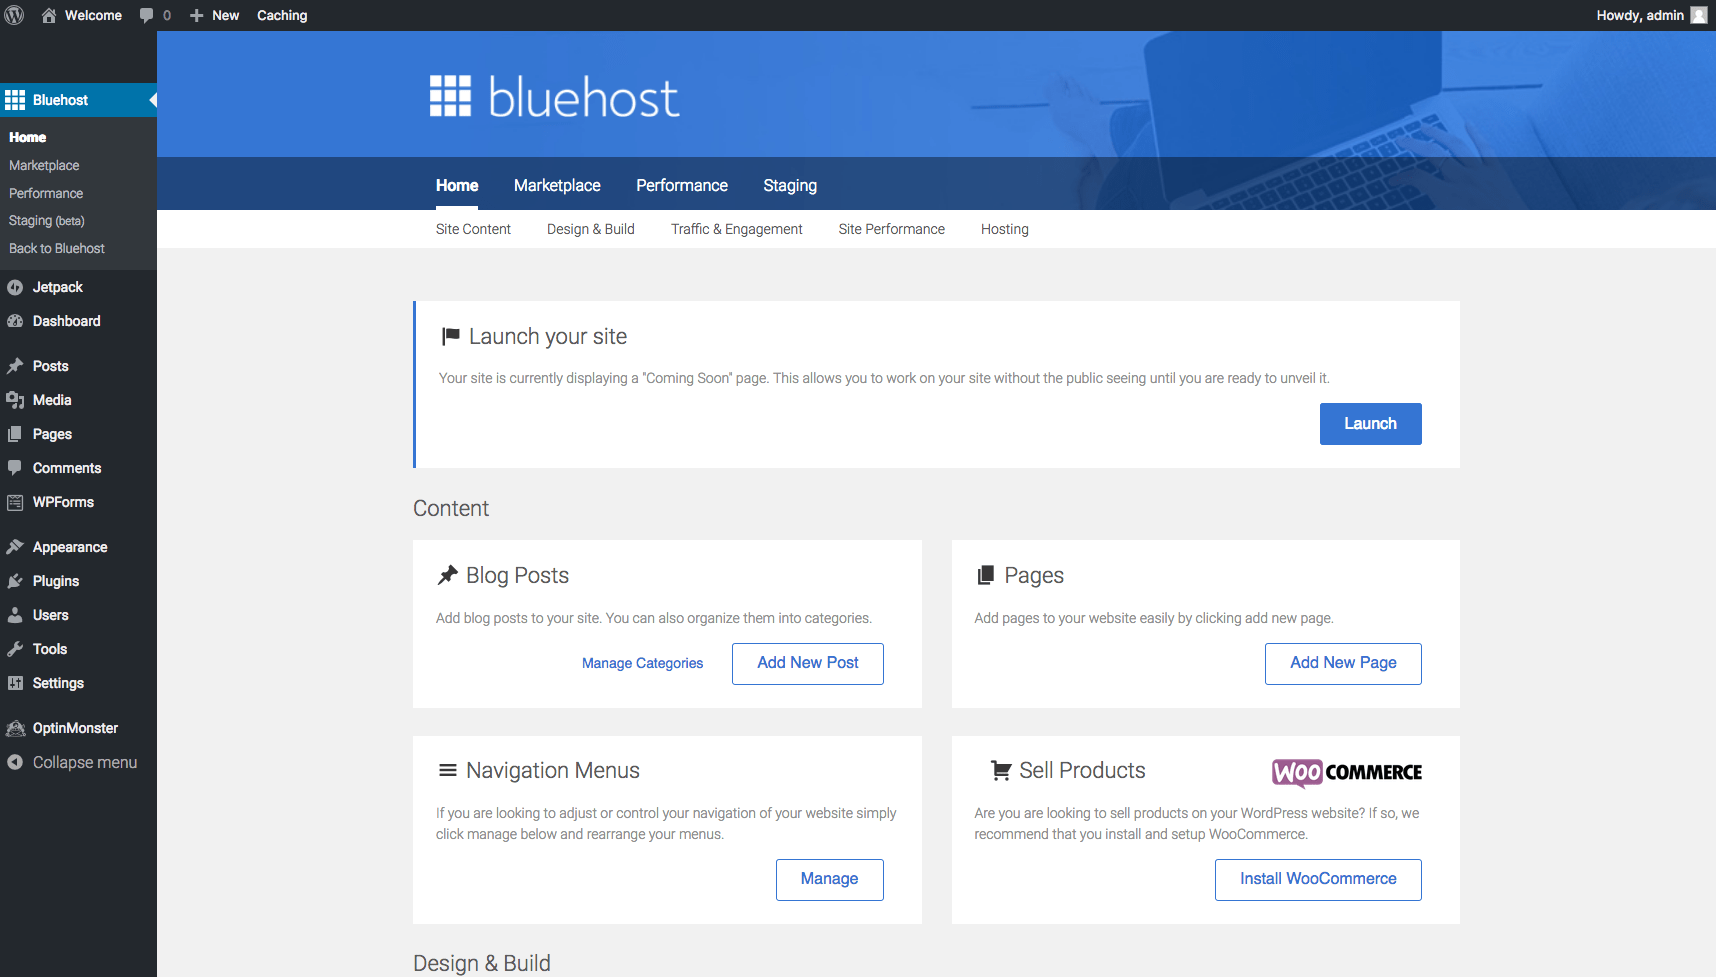 Dashboard via Bluehost